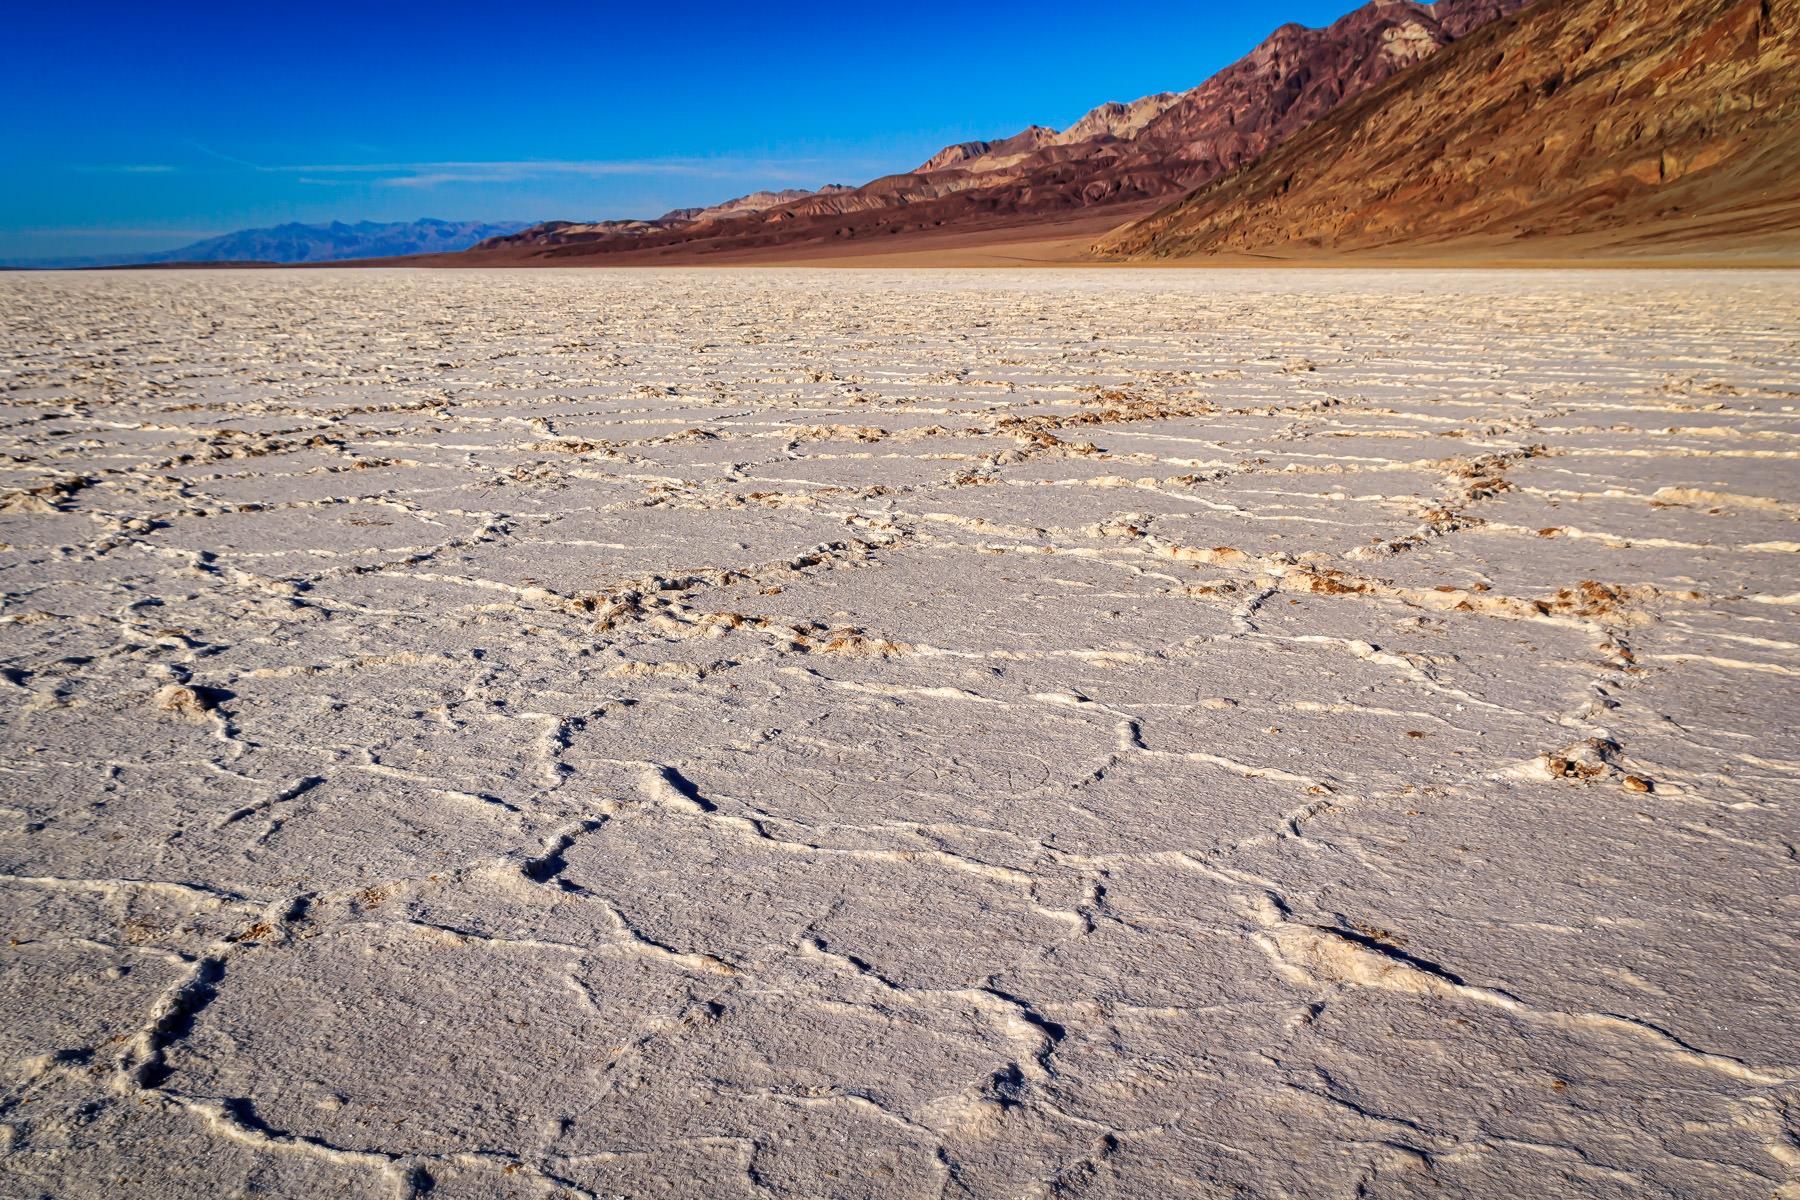 The salt flats of Badwater Basin—the lowest point in the United States—at Death Valley National Park, California.